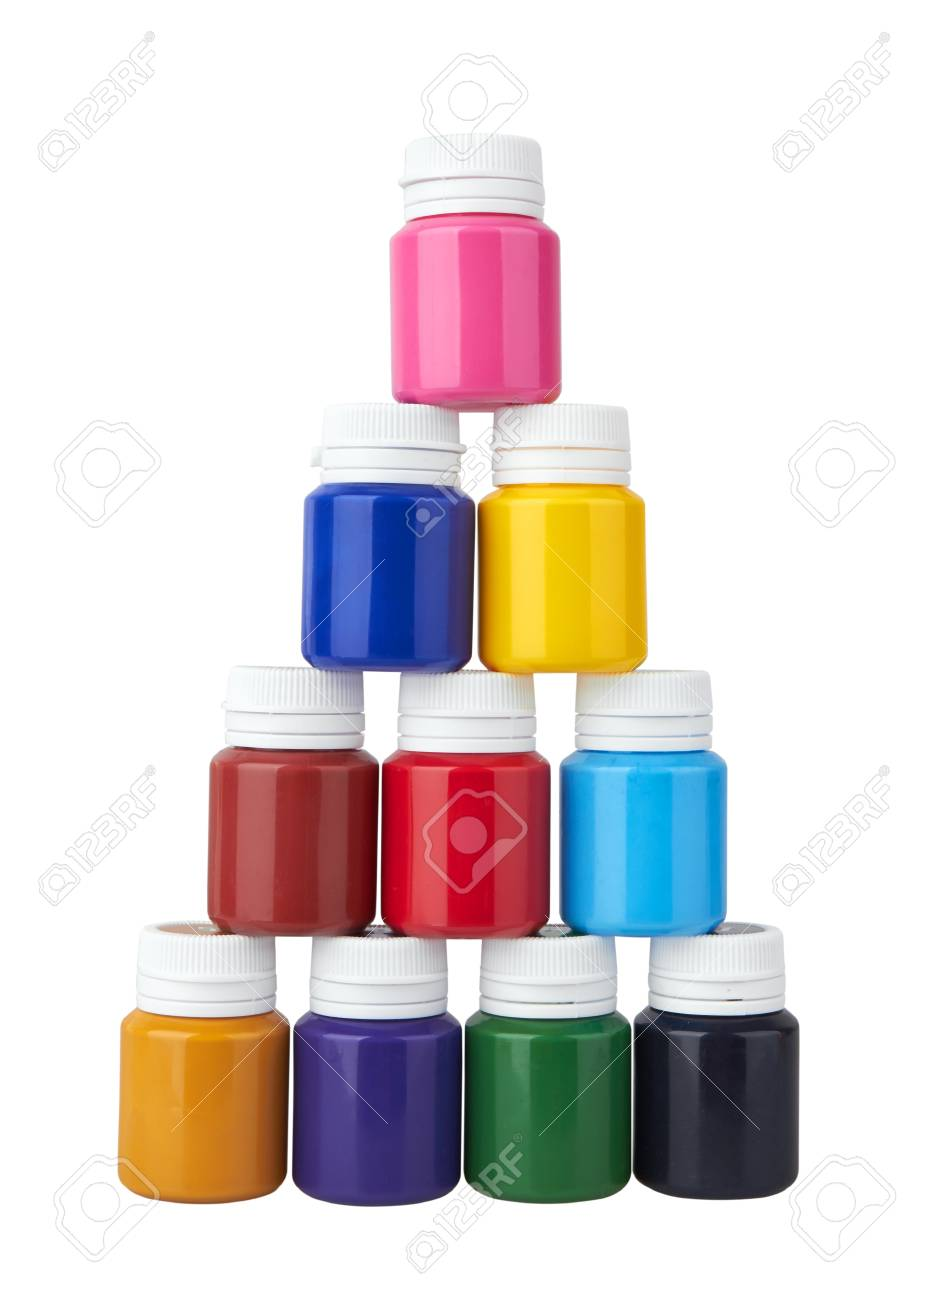 Color gouache jars and color acrylic paints isolated on white background - 116814191